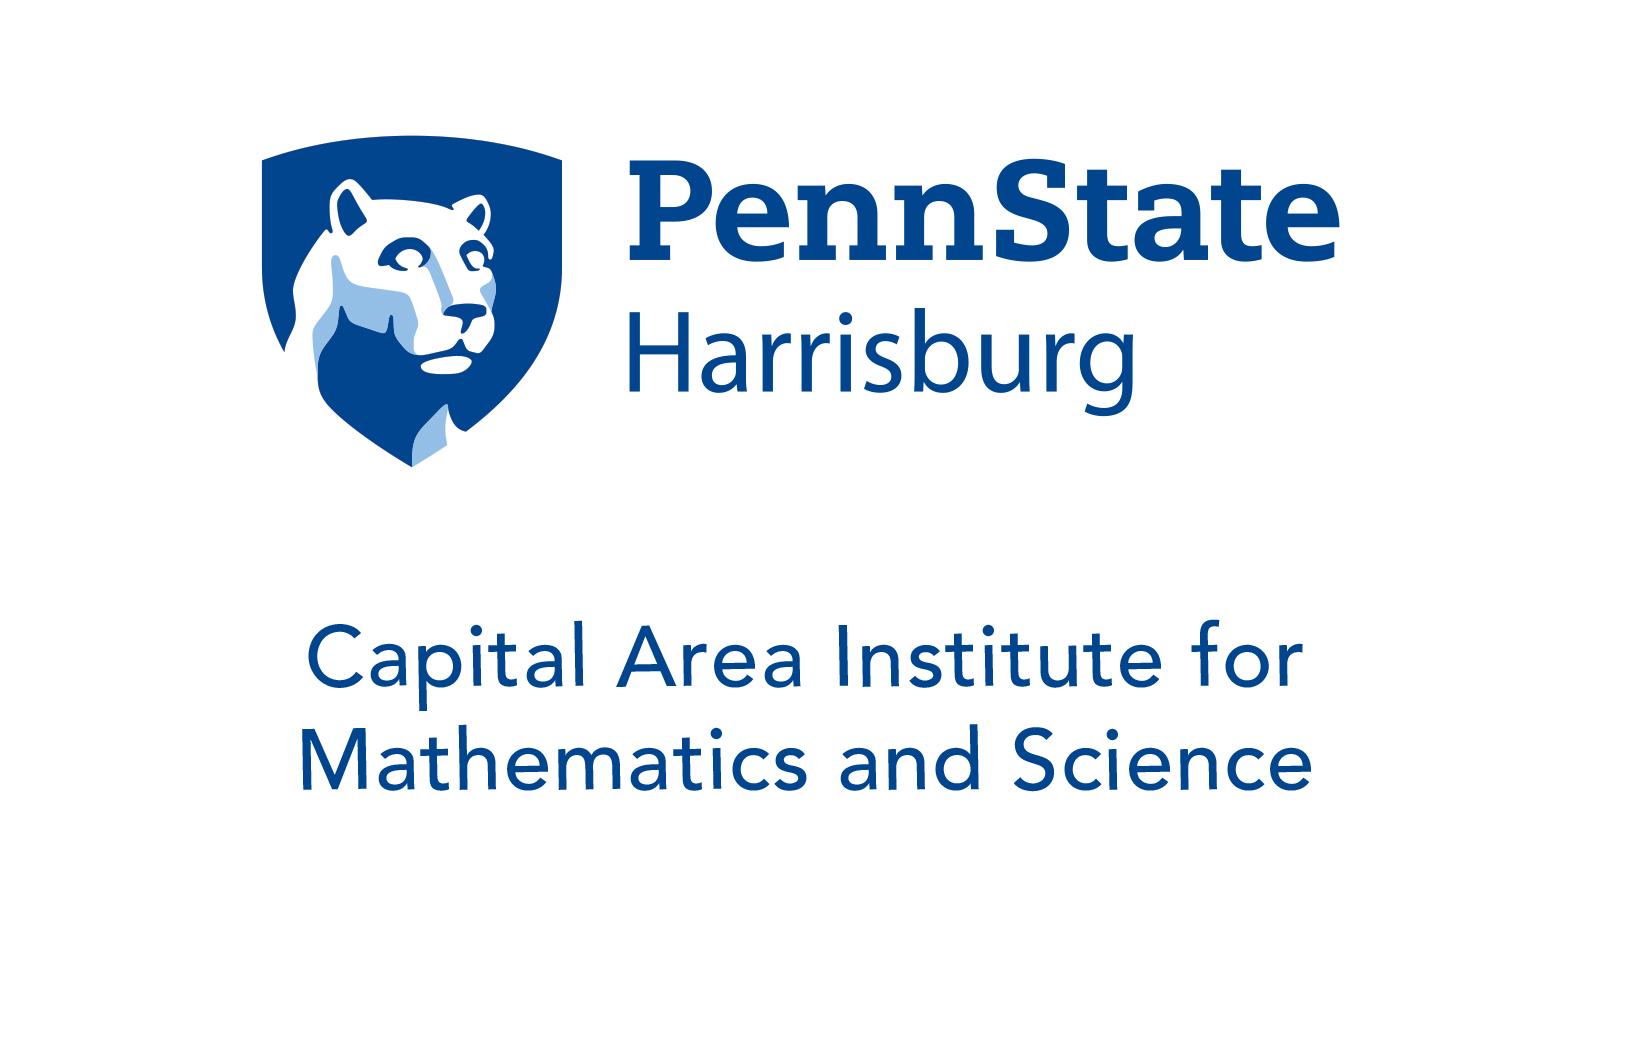 Penn State Harrisburg: Capital Area Institute for Mathematics and Science (CAIMS)  profile picture